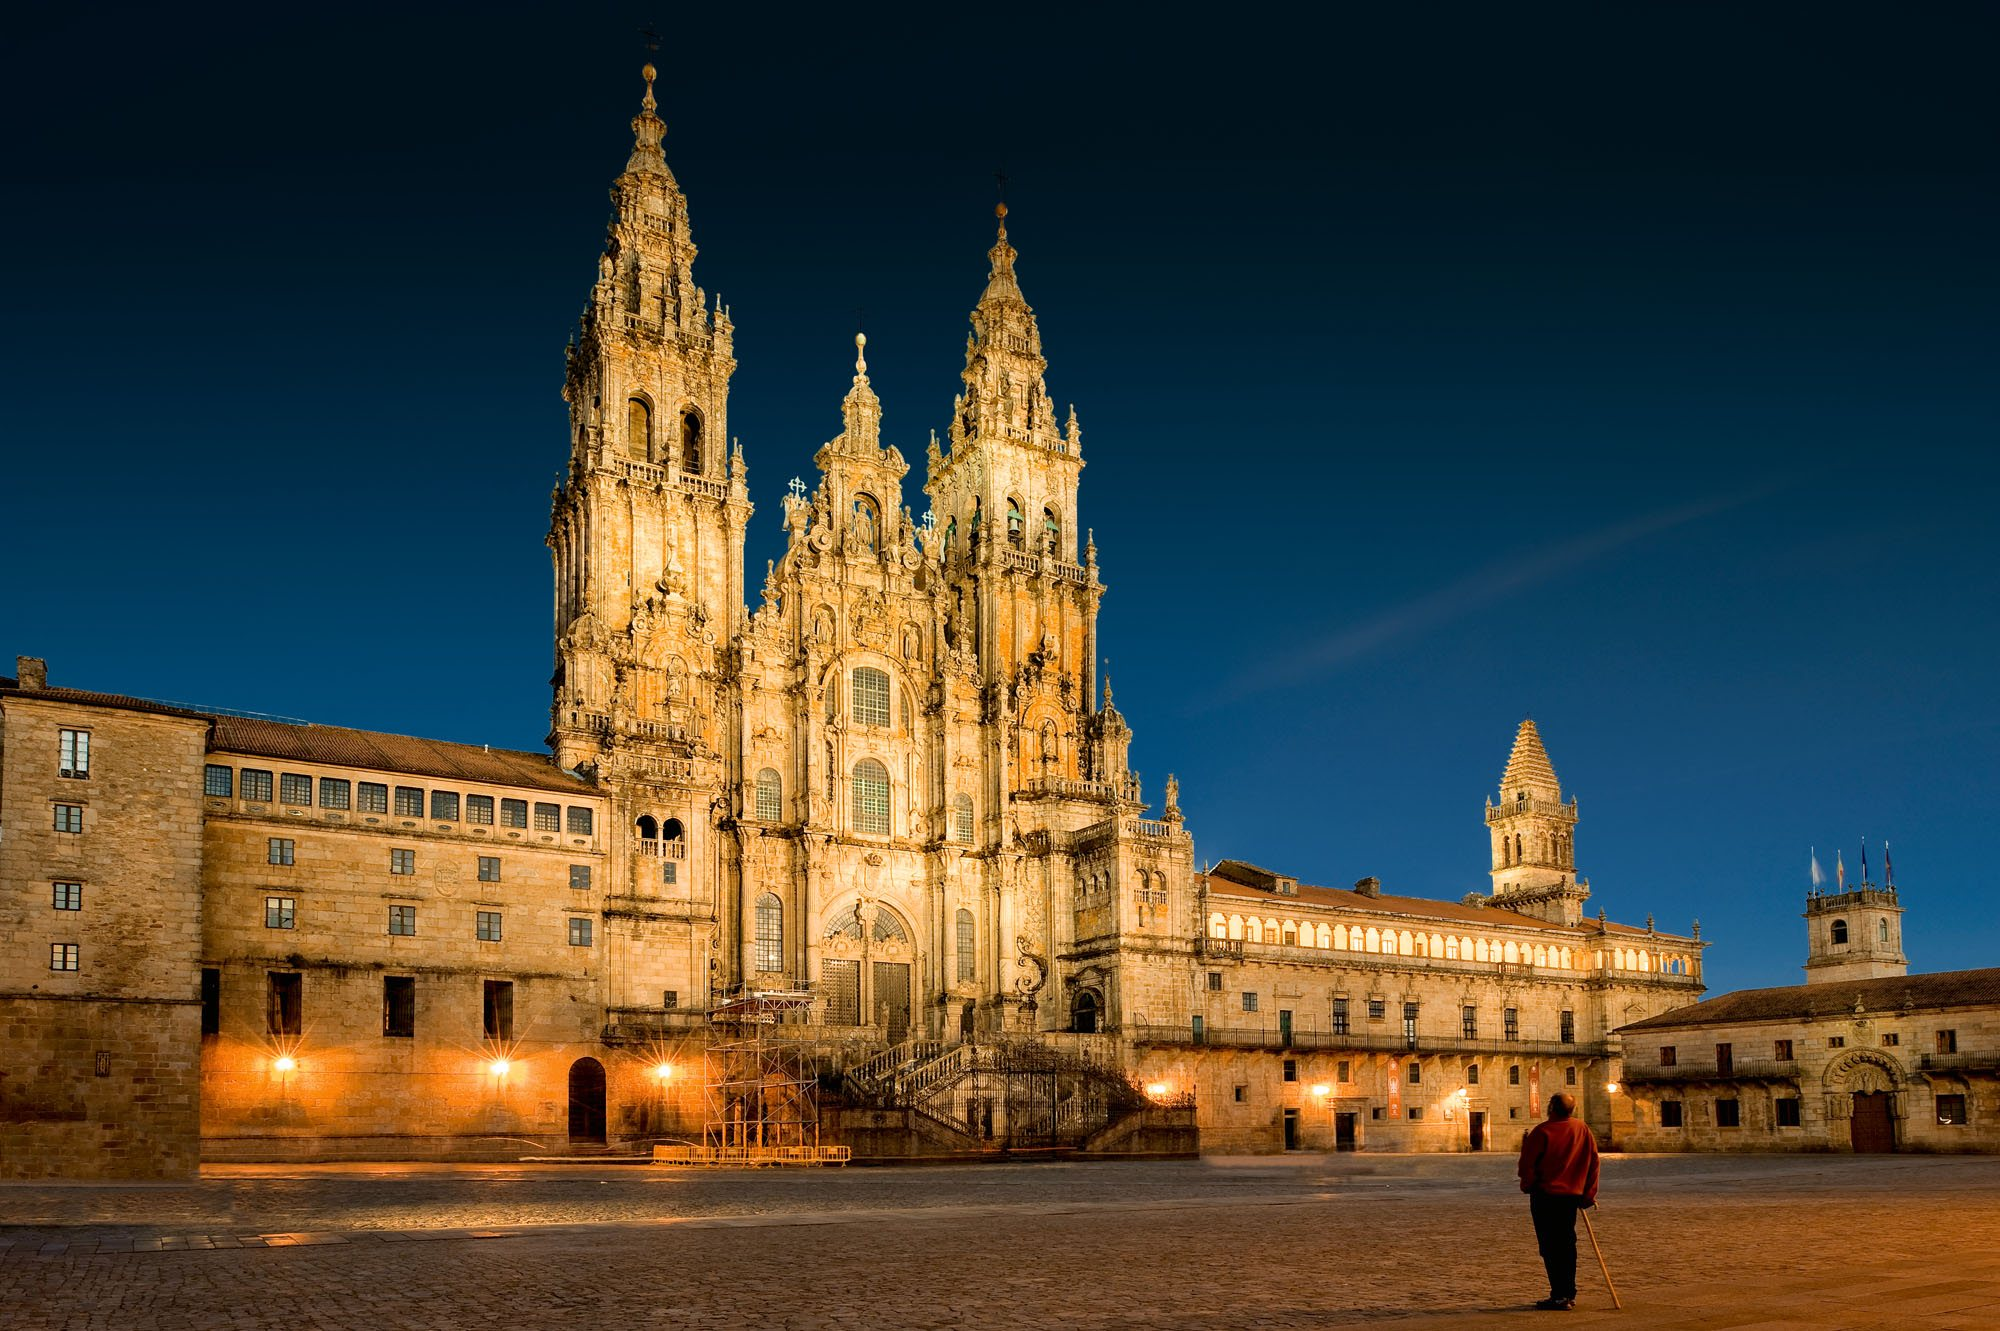 Win a Place in the PAT 8 and 3-Day J-R Celebration Tour in Santiago de Compostela, Spain